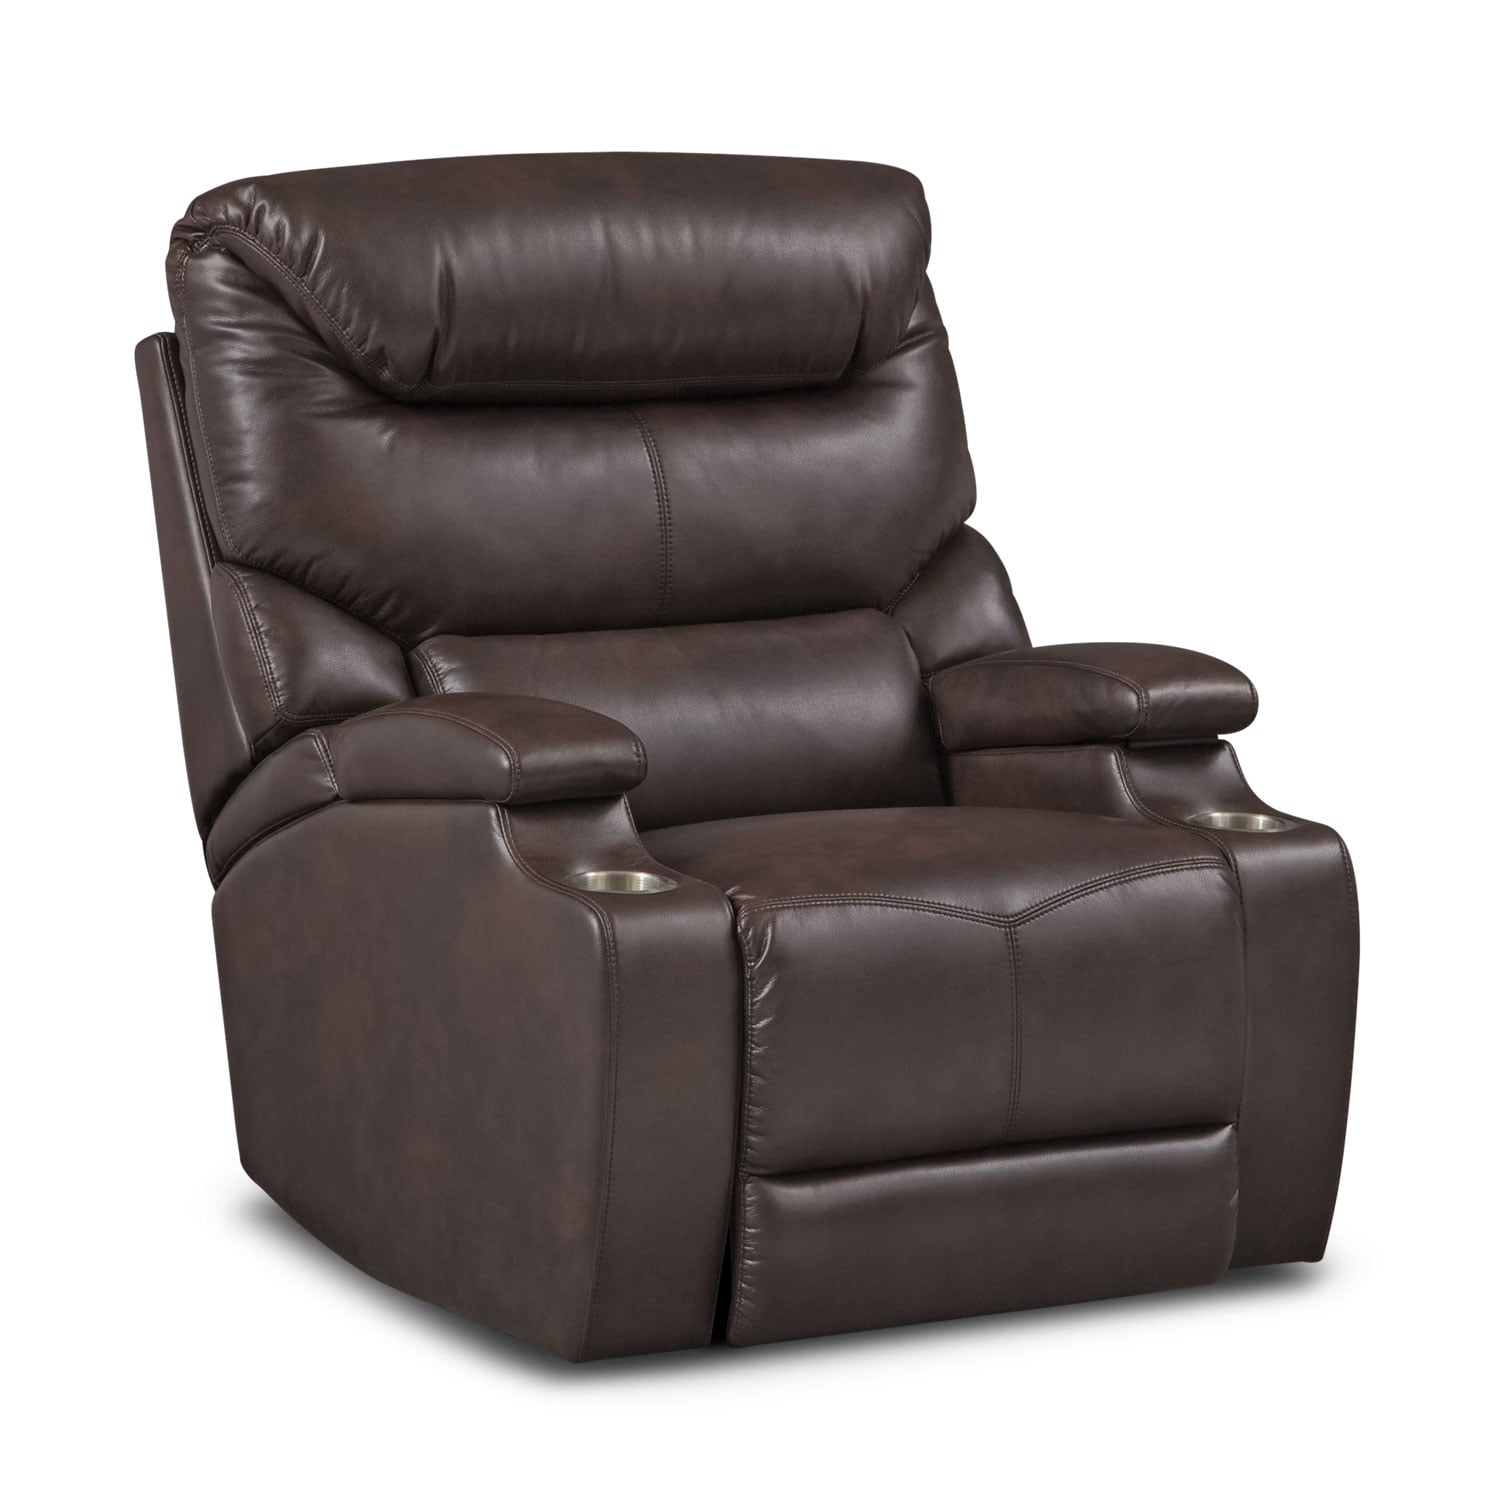 Seating Furniture Living Room Recliners Rockers Living Room Seating American Signature